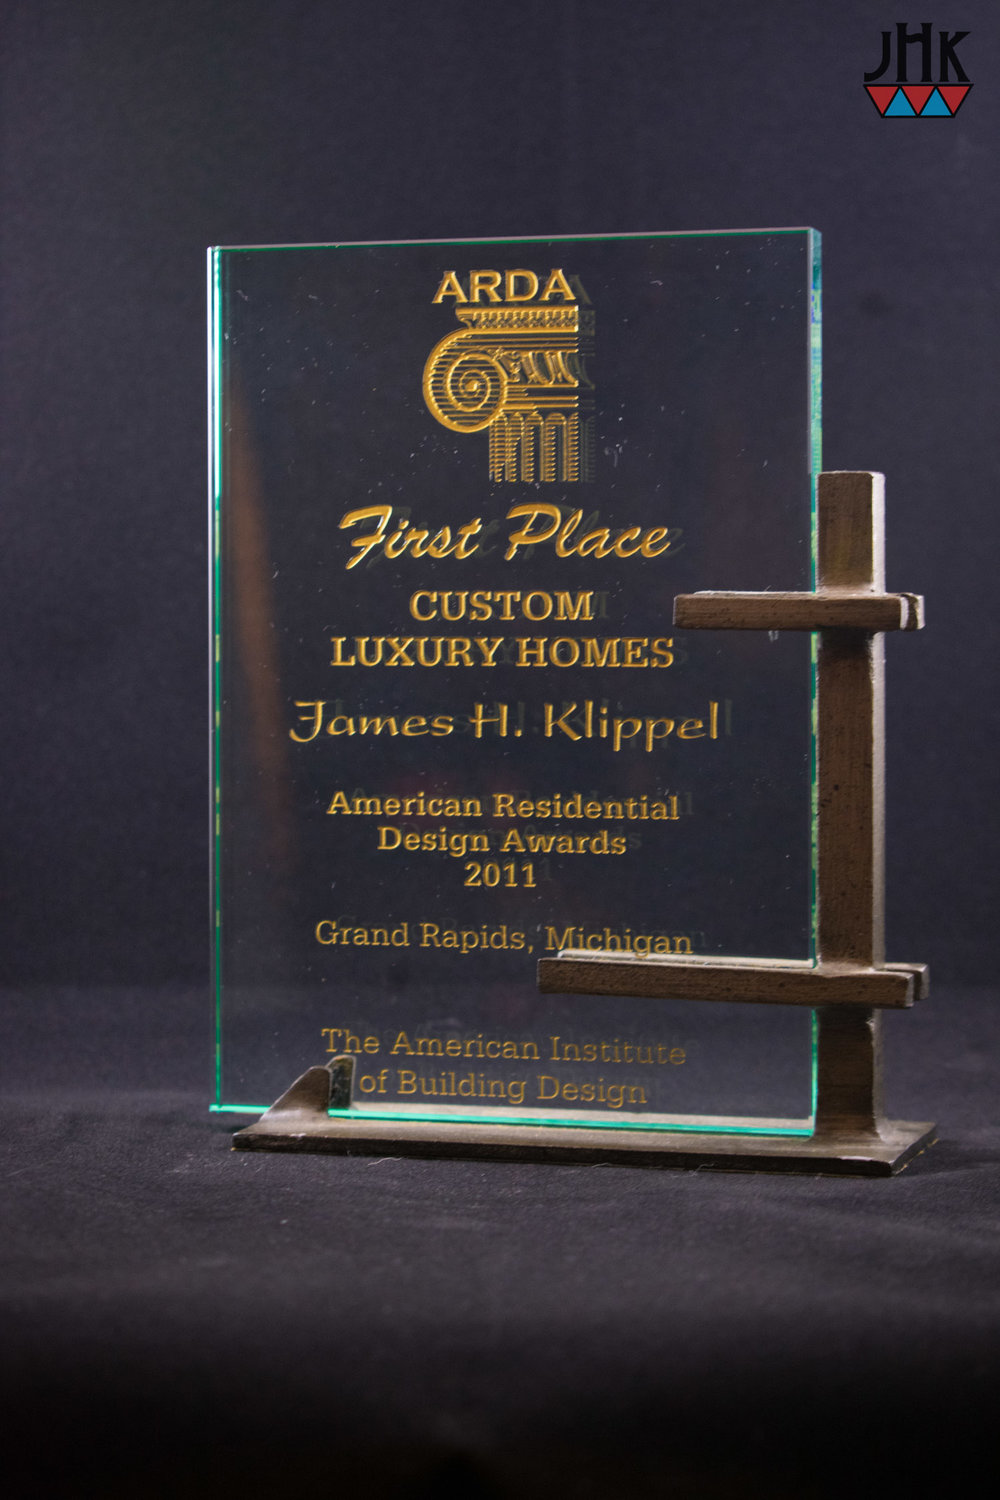 aibd arda award first place custom luxury homes grand rapids michigan jim klippel 2005-1.jpg